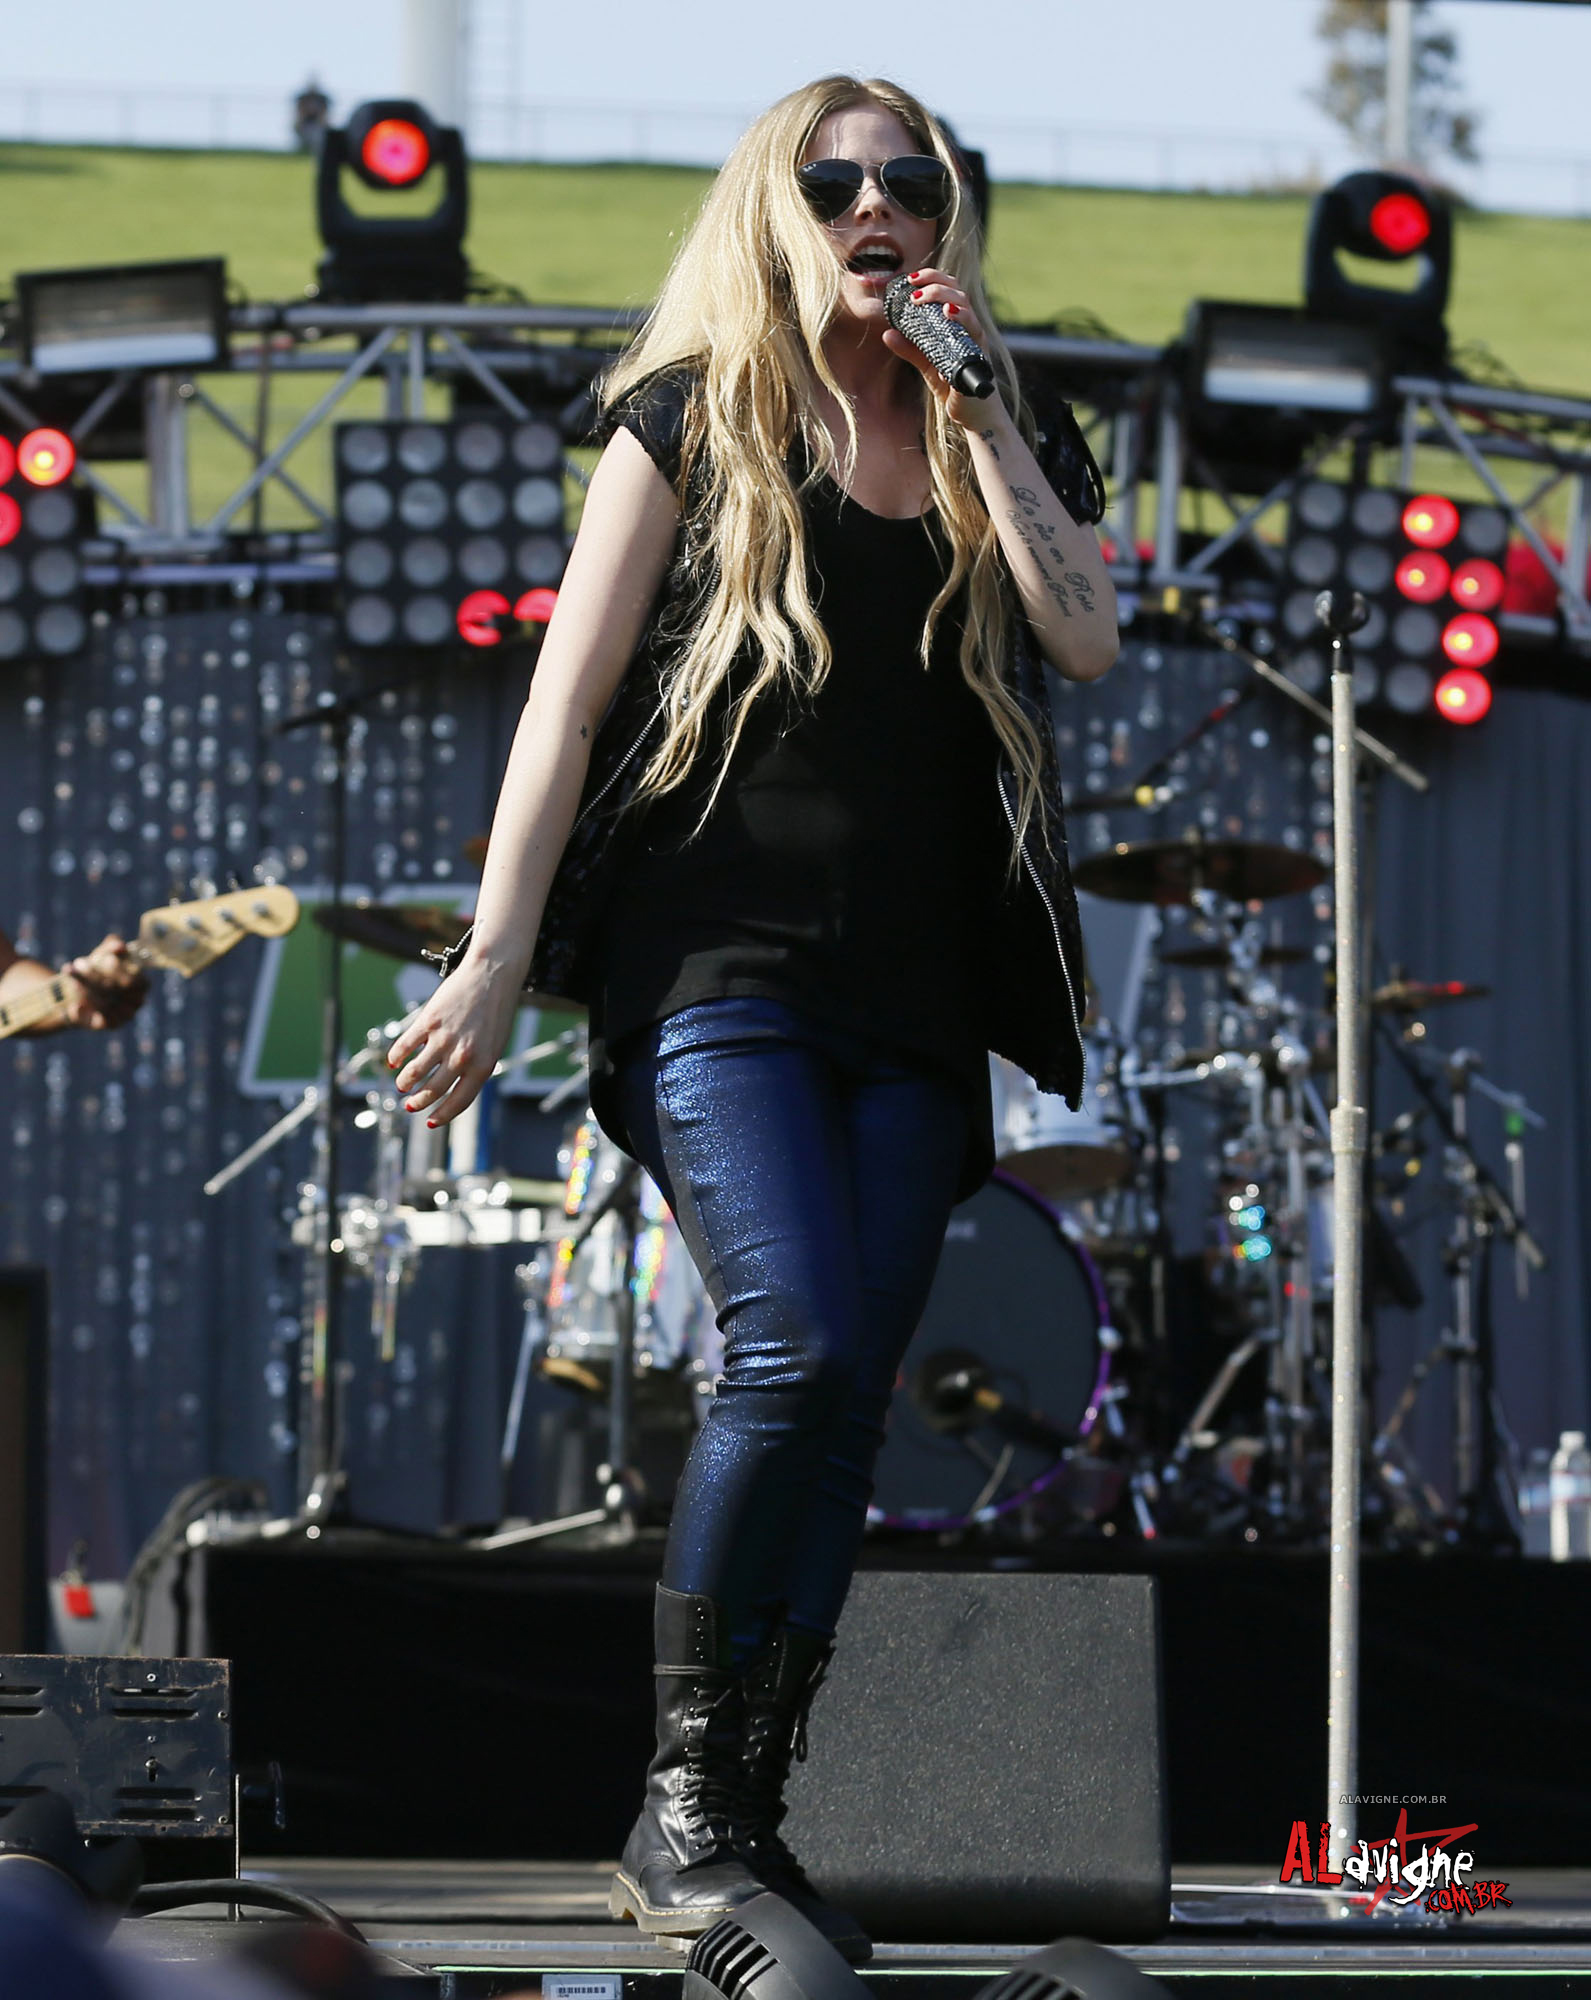 Avril Lavigne @ WT HQ PERFORMANCE 04